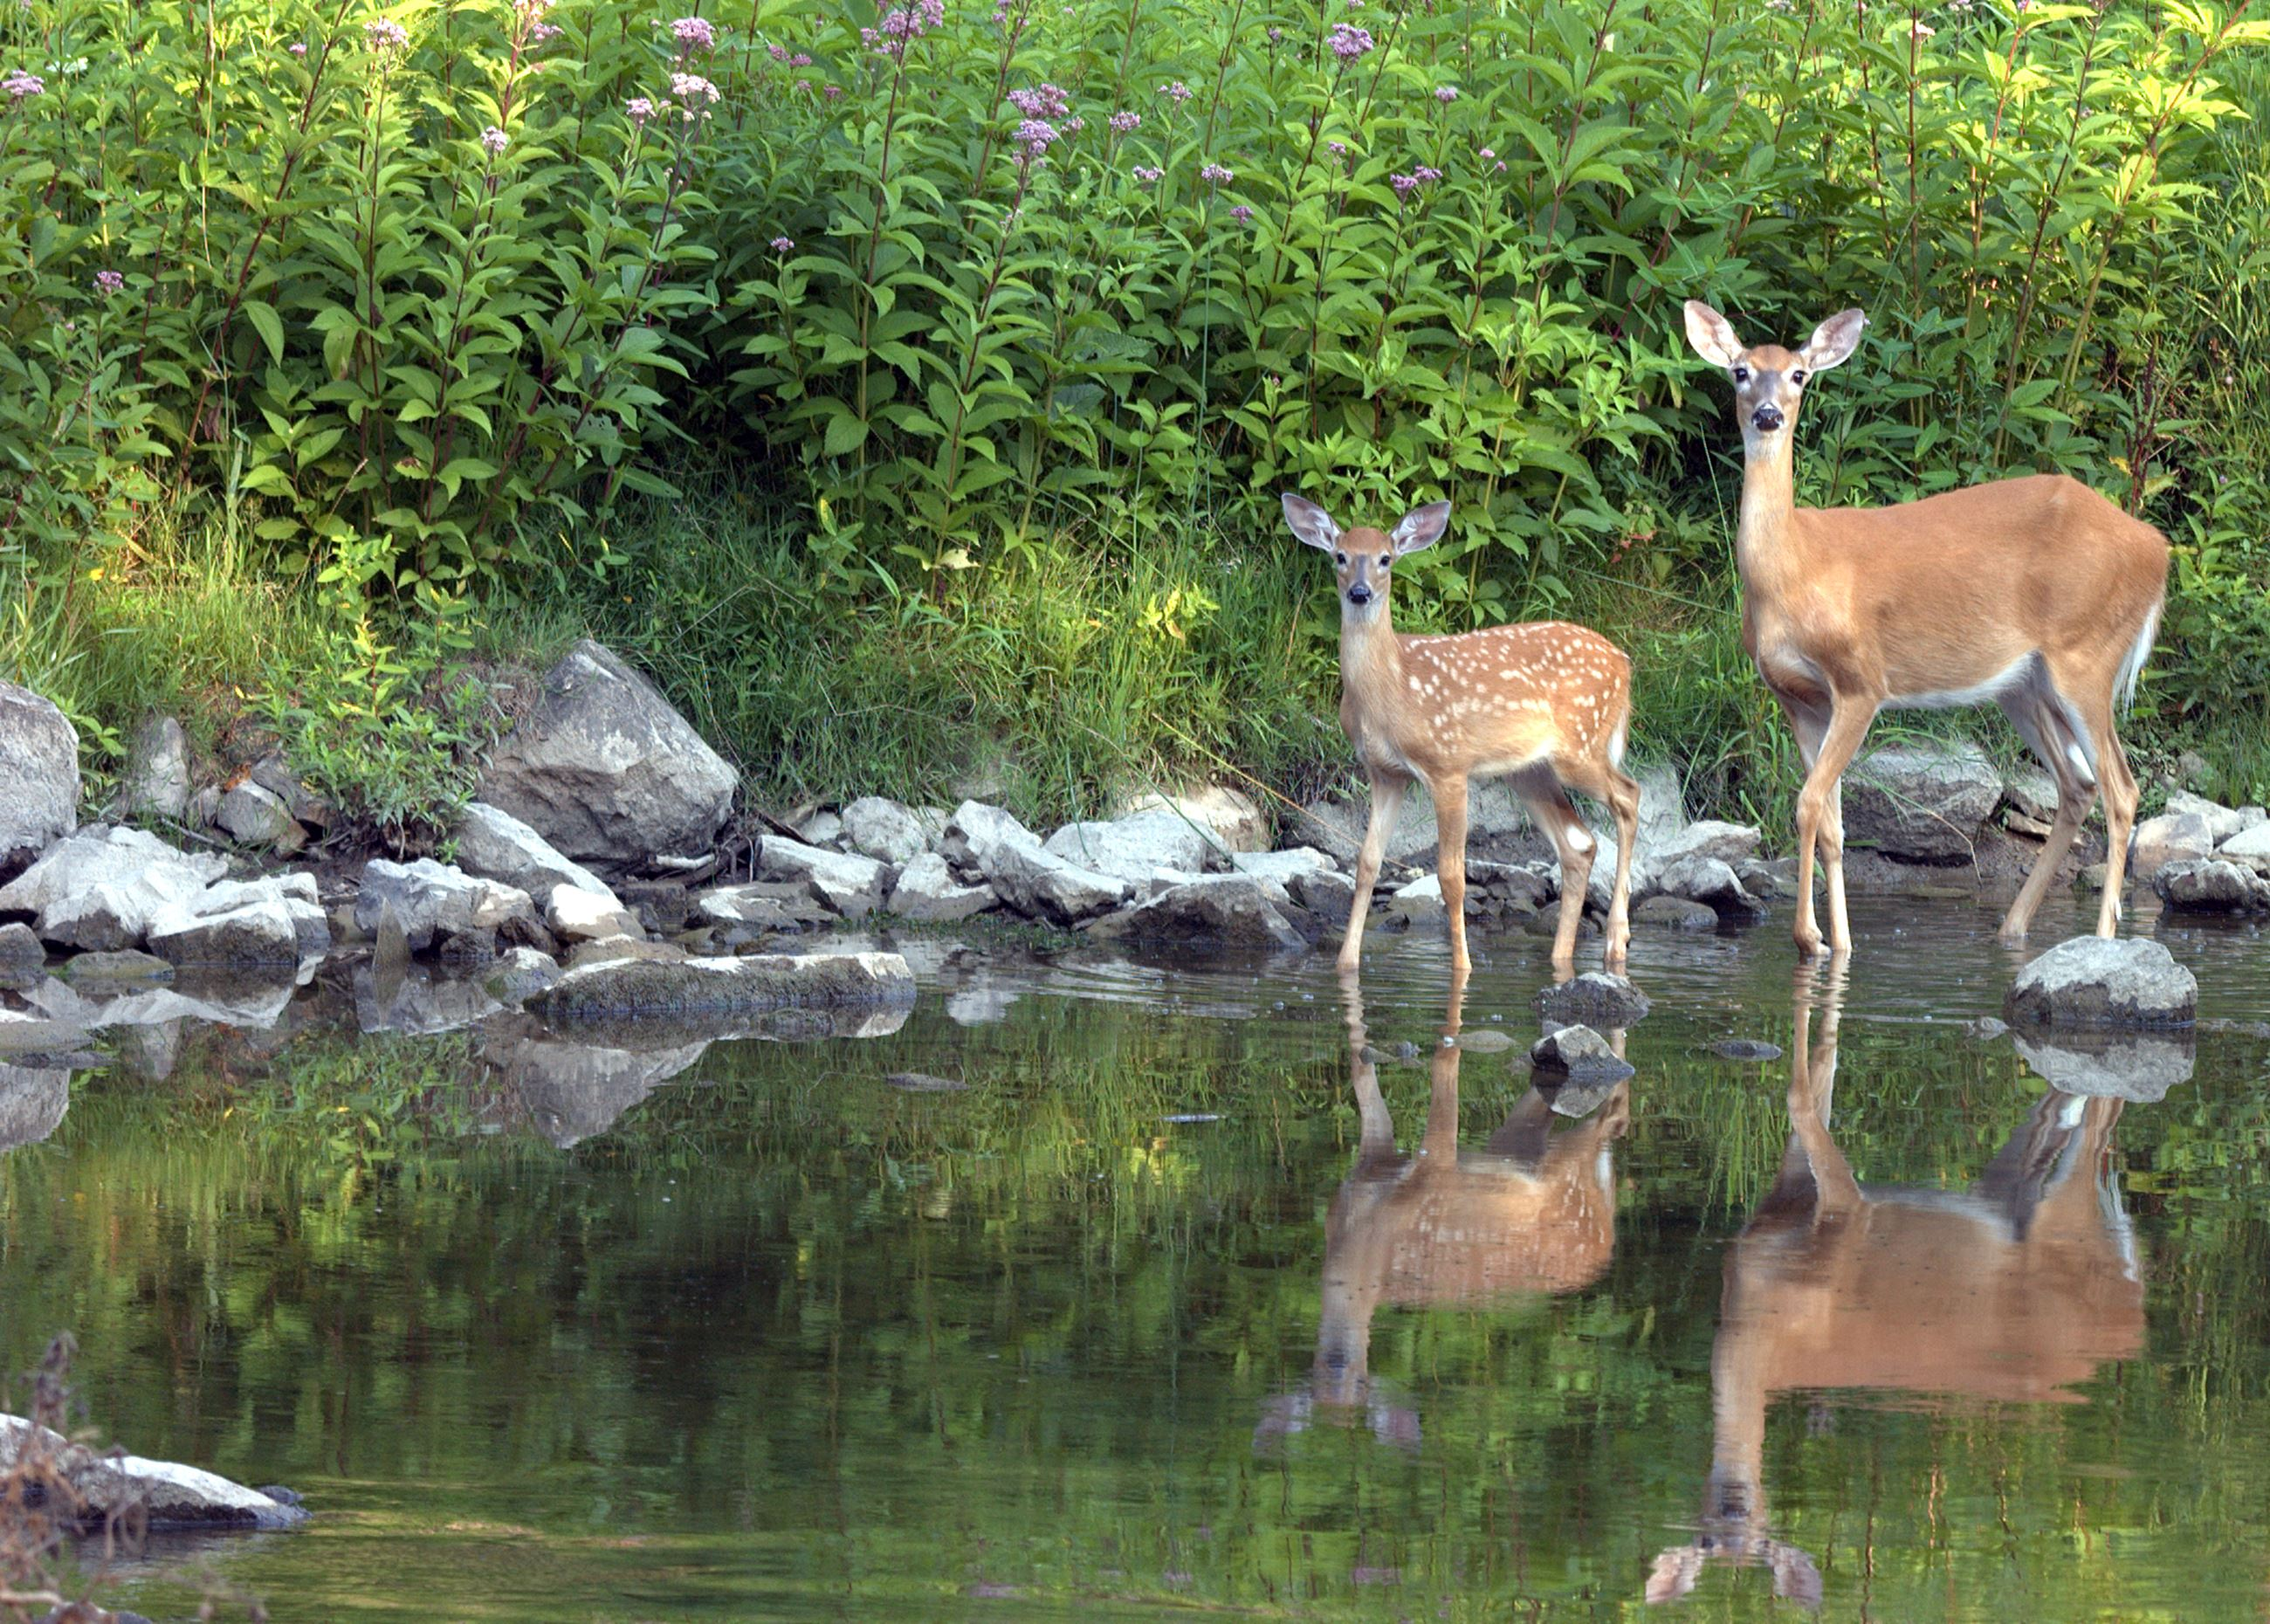 Mom and baby deer in water